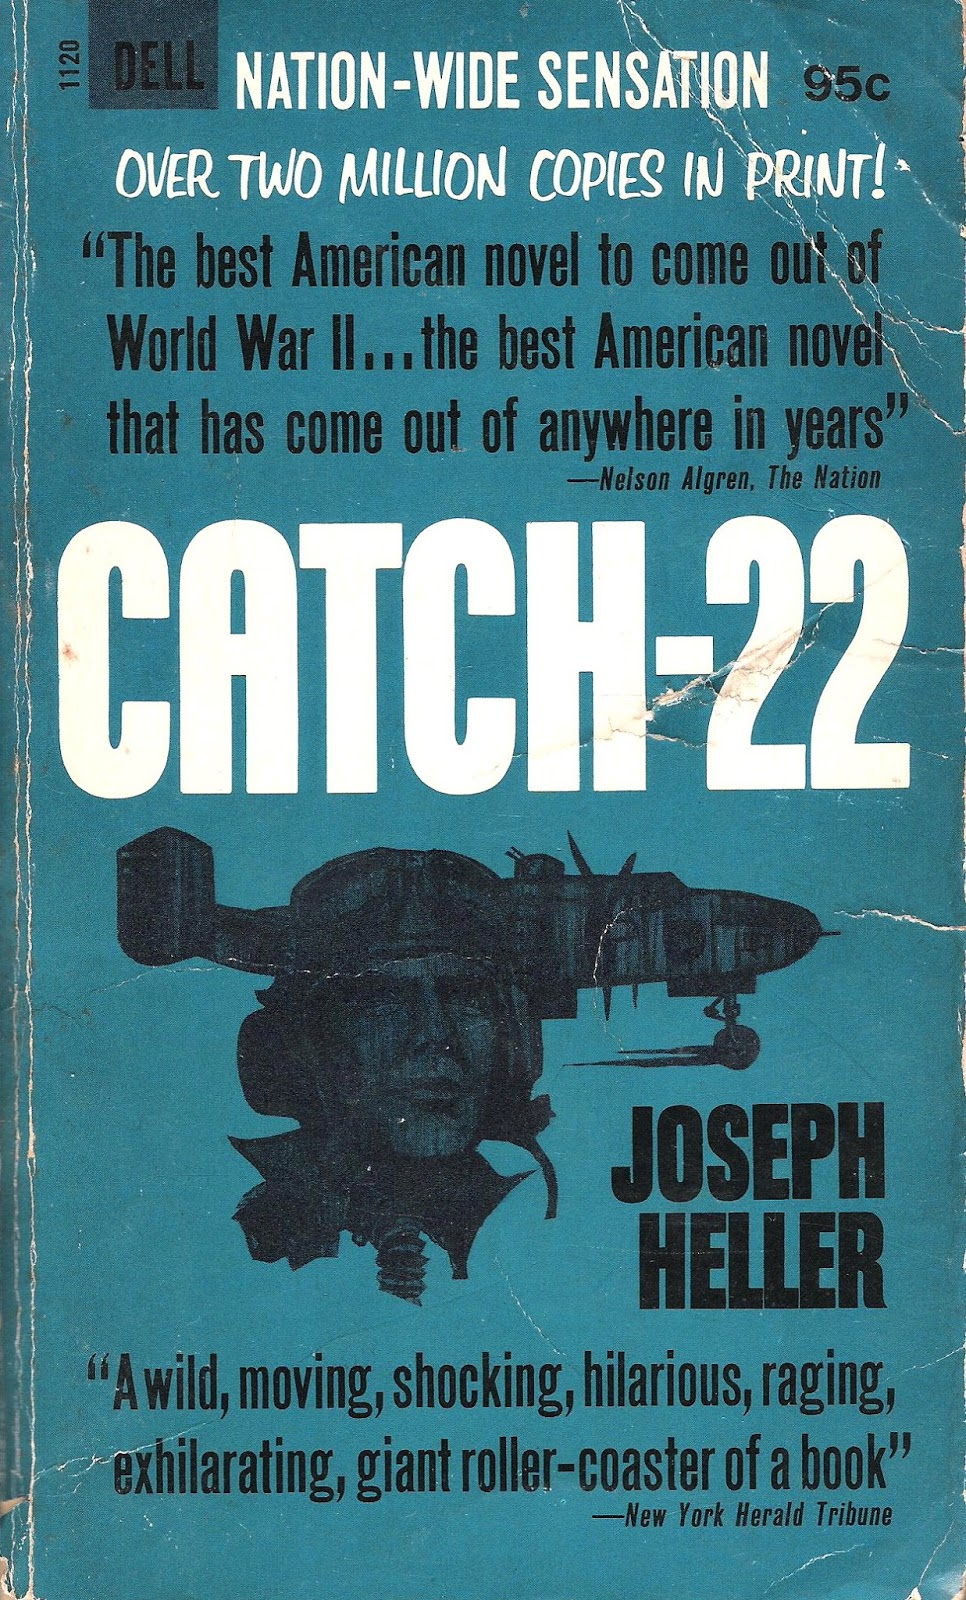 the classic american literature catch 22 by joseph heller Find great deals on ebay for catch 22 in books about fiction and literature  catch 22 joseph heller classic american literature  catch-22 by joseph heller,.